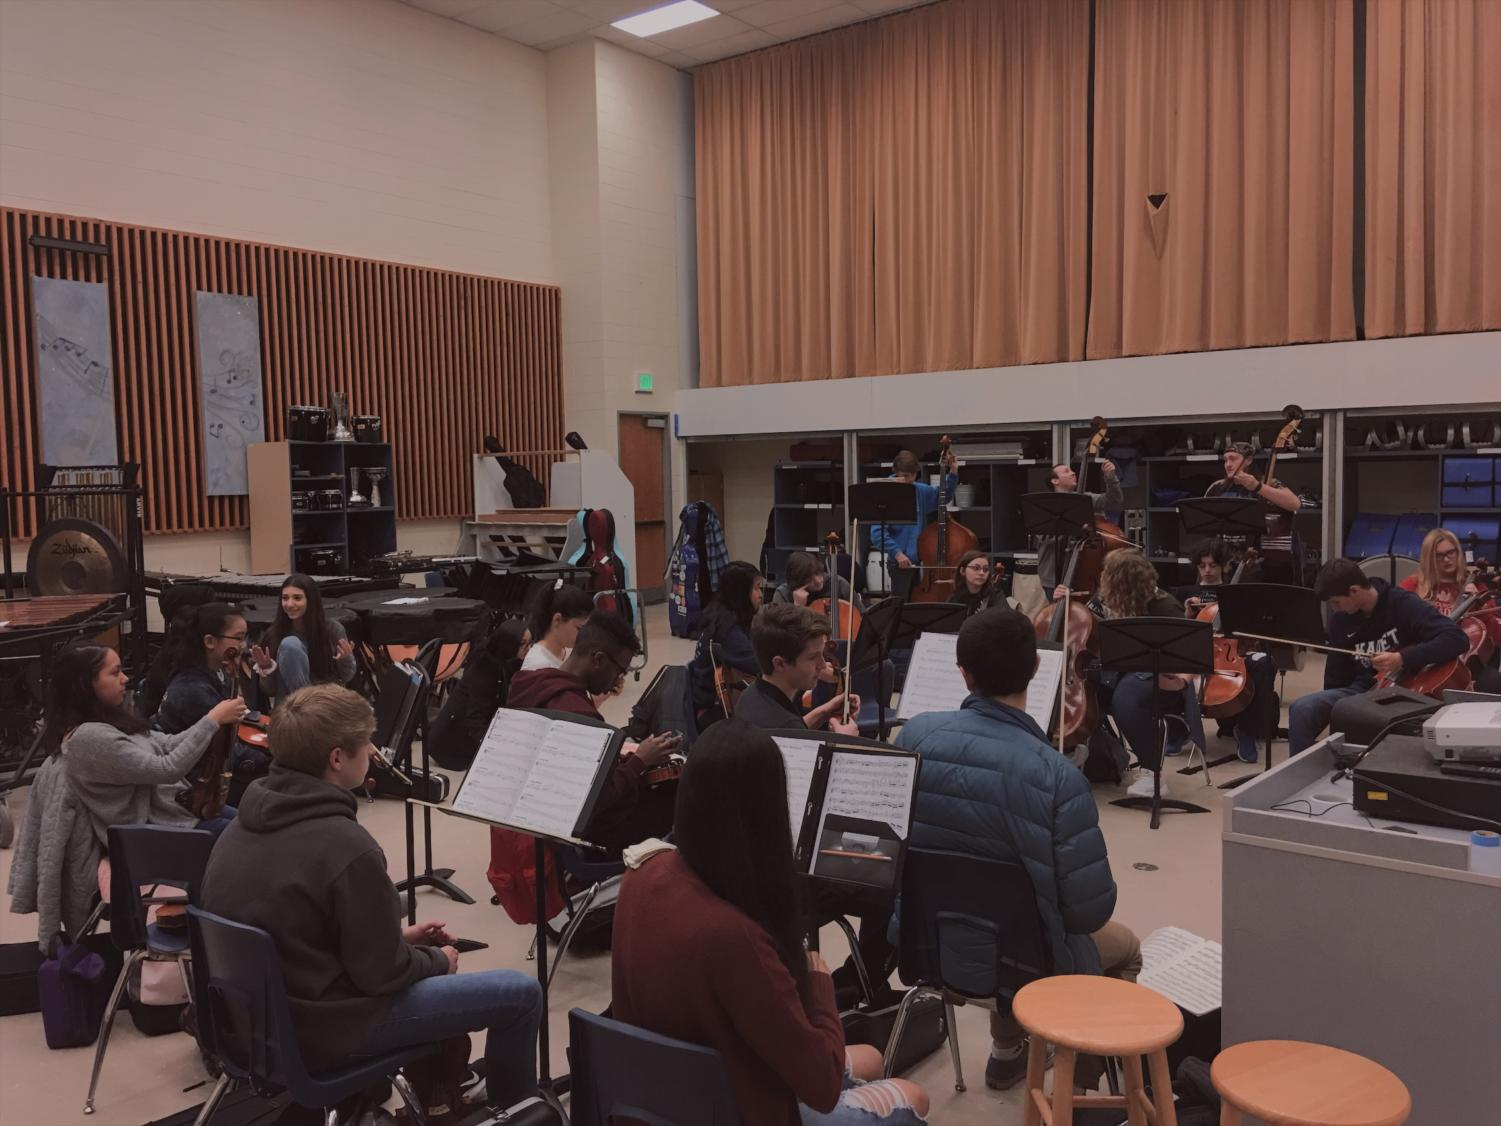 Orchestra warms up their instruments and prepares for instruction.